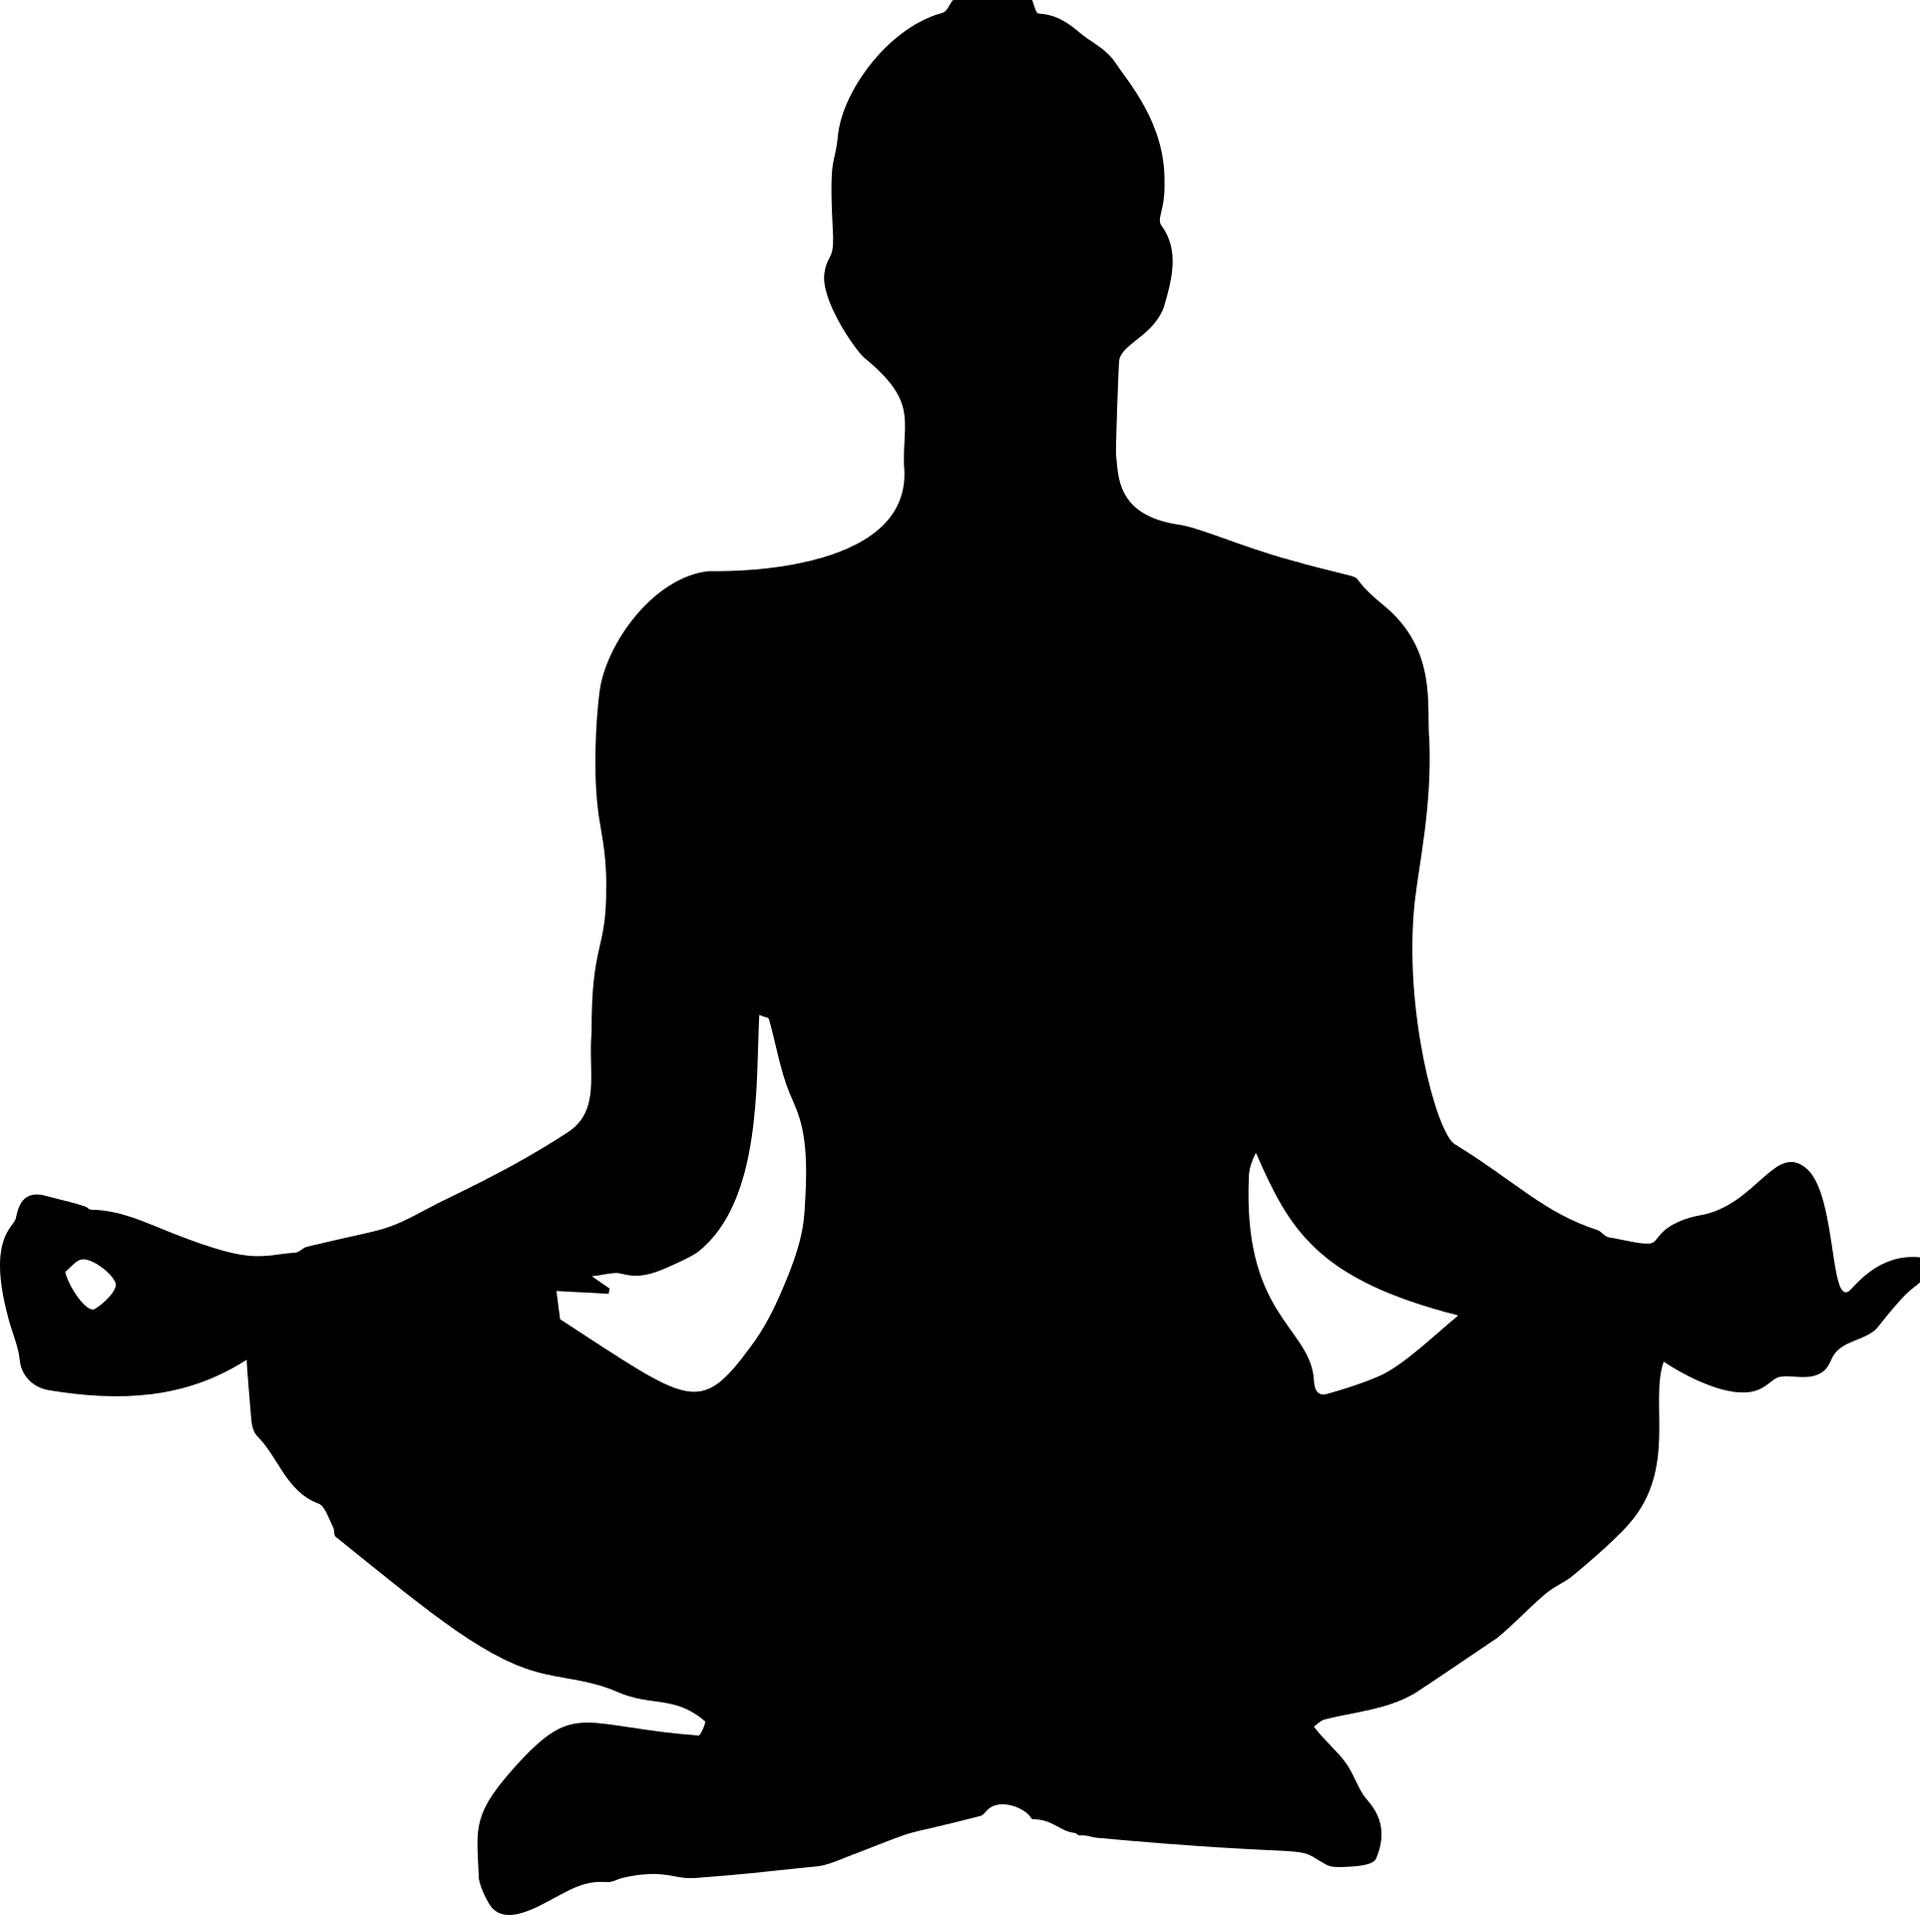 Mindfulness and librarianship international. Exercise clipart female exercise